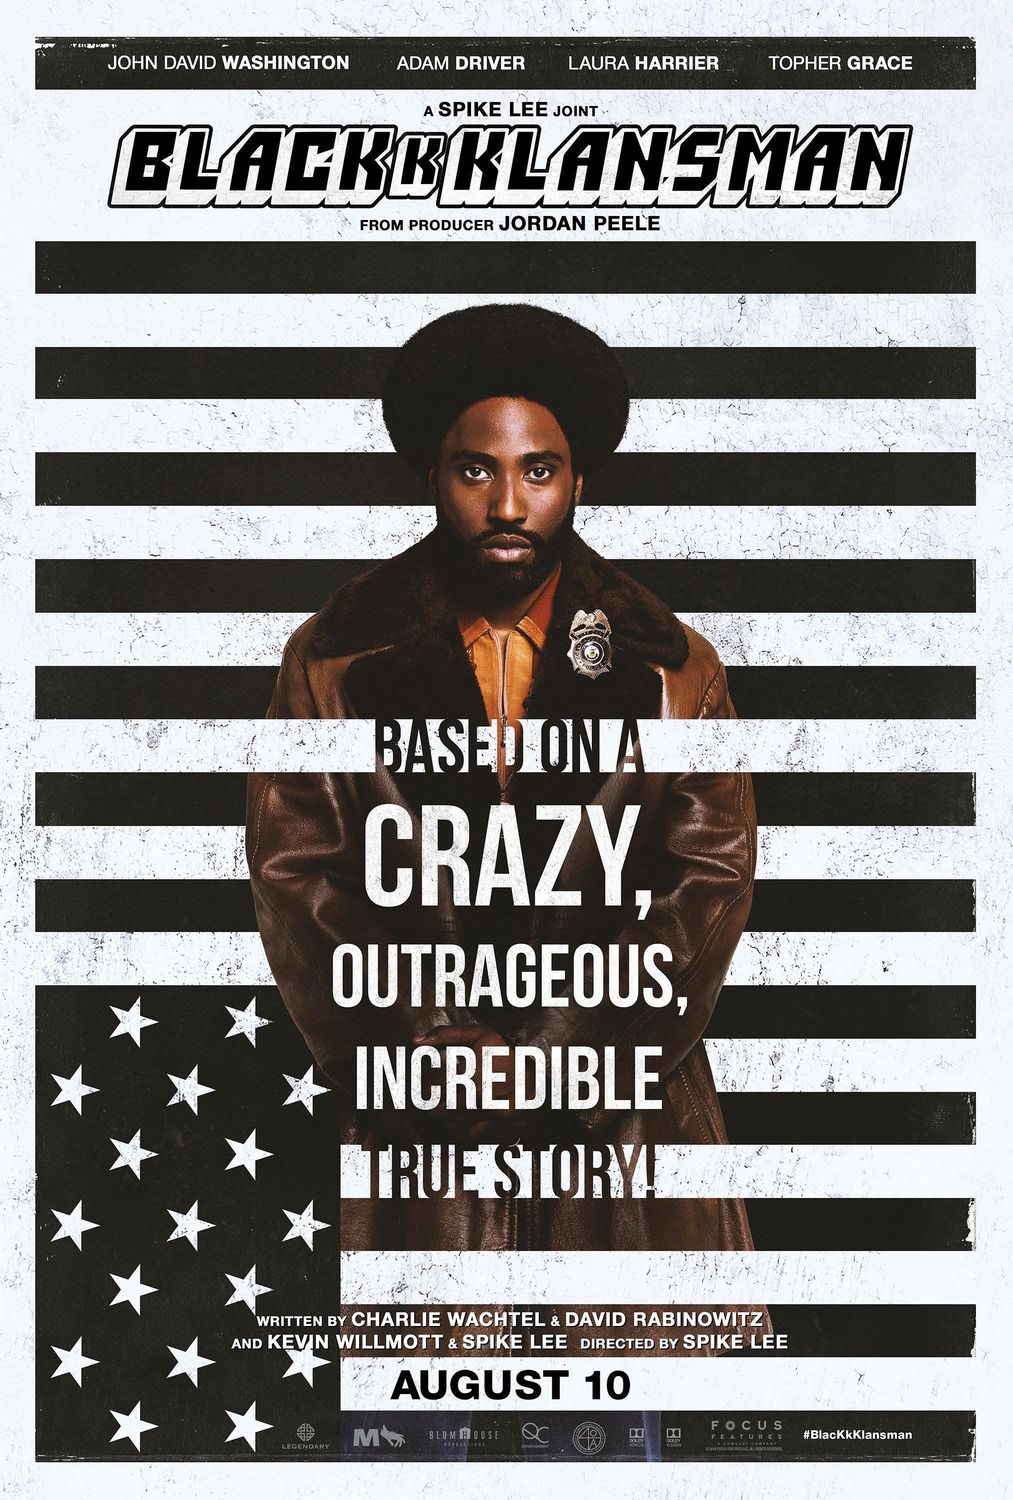 Blackkklansman 2018 by Spike Lee film poster